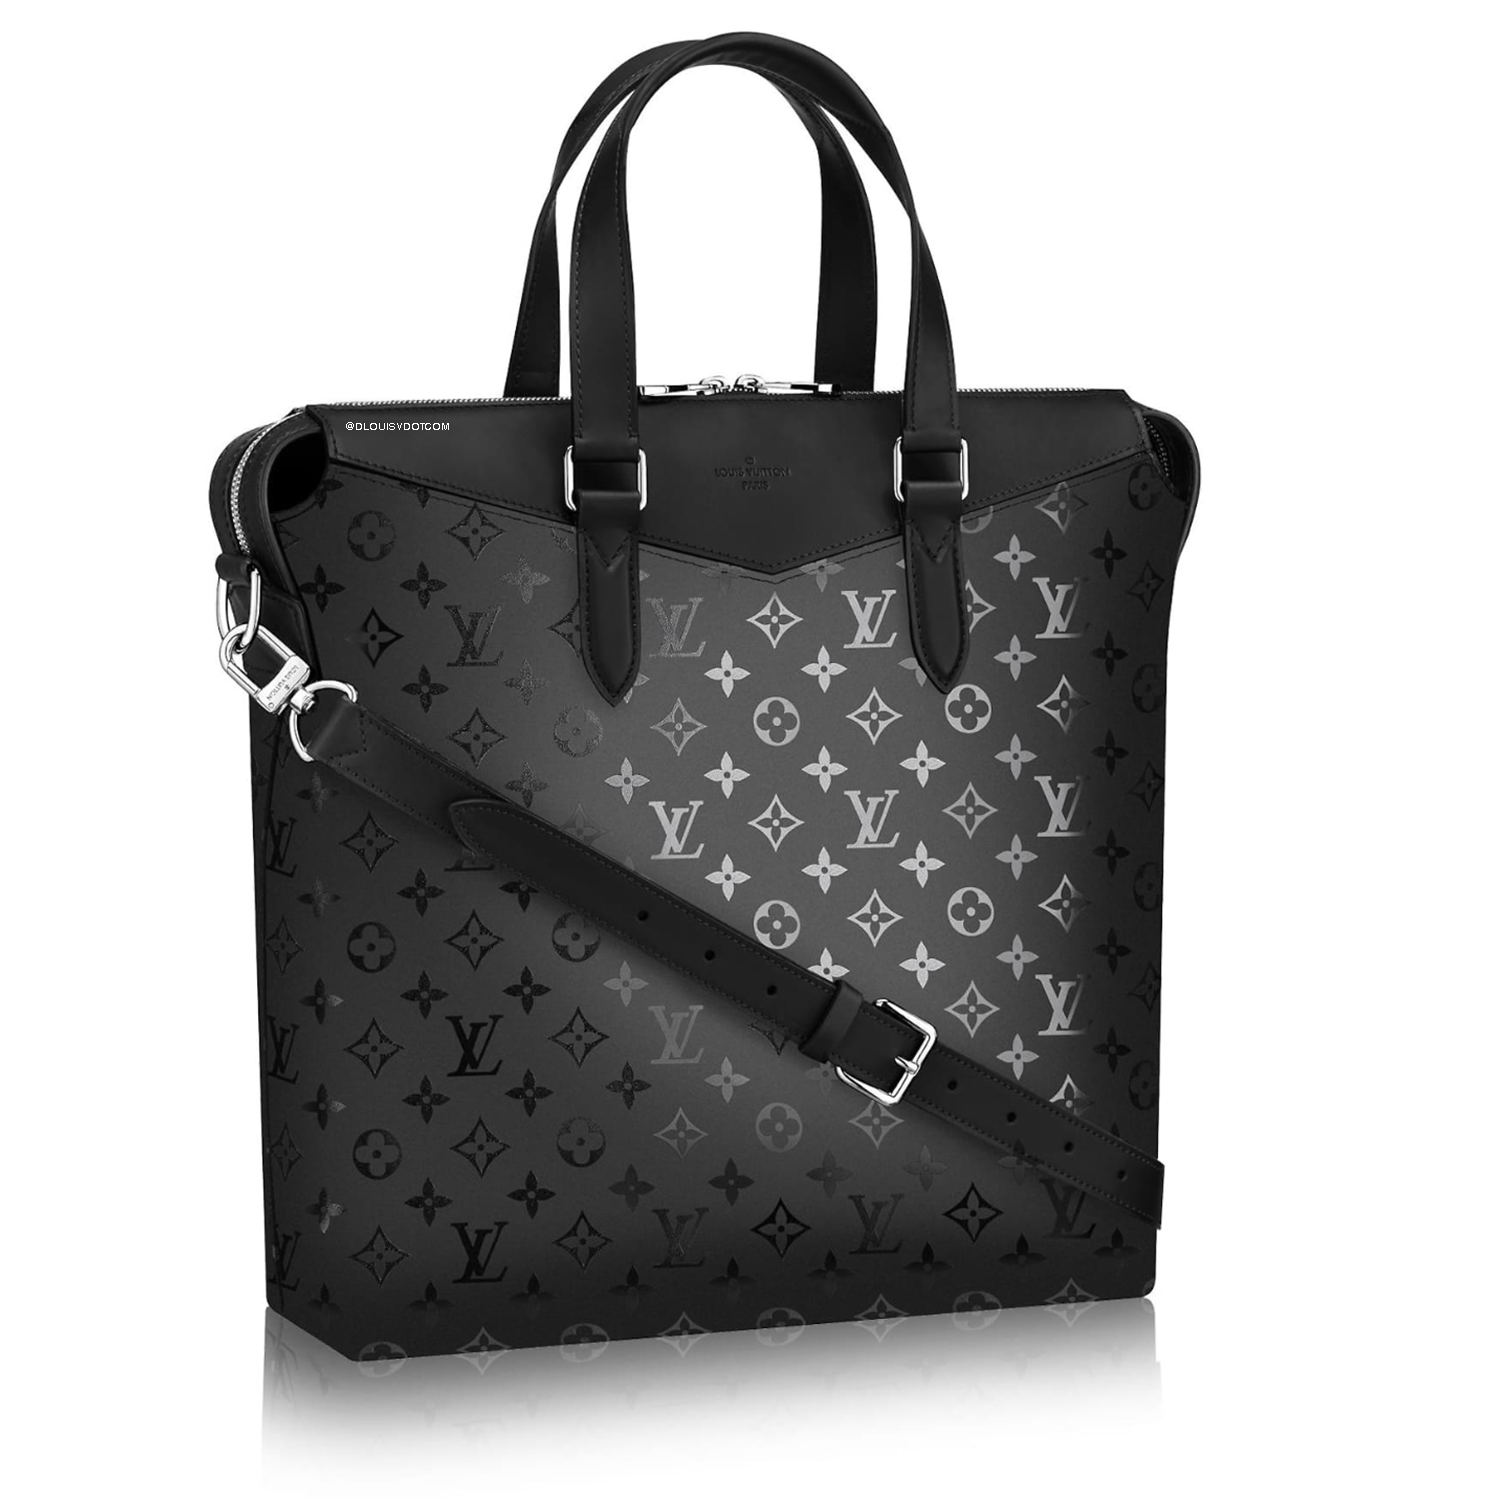 TOTE EXPLORER - €2700 $M40528MONOGRAM ILLUSION